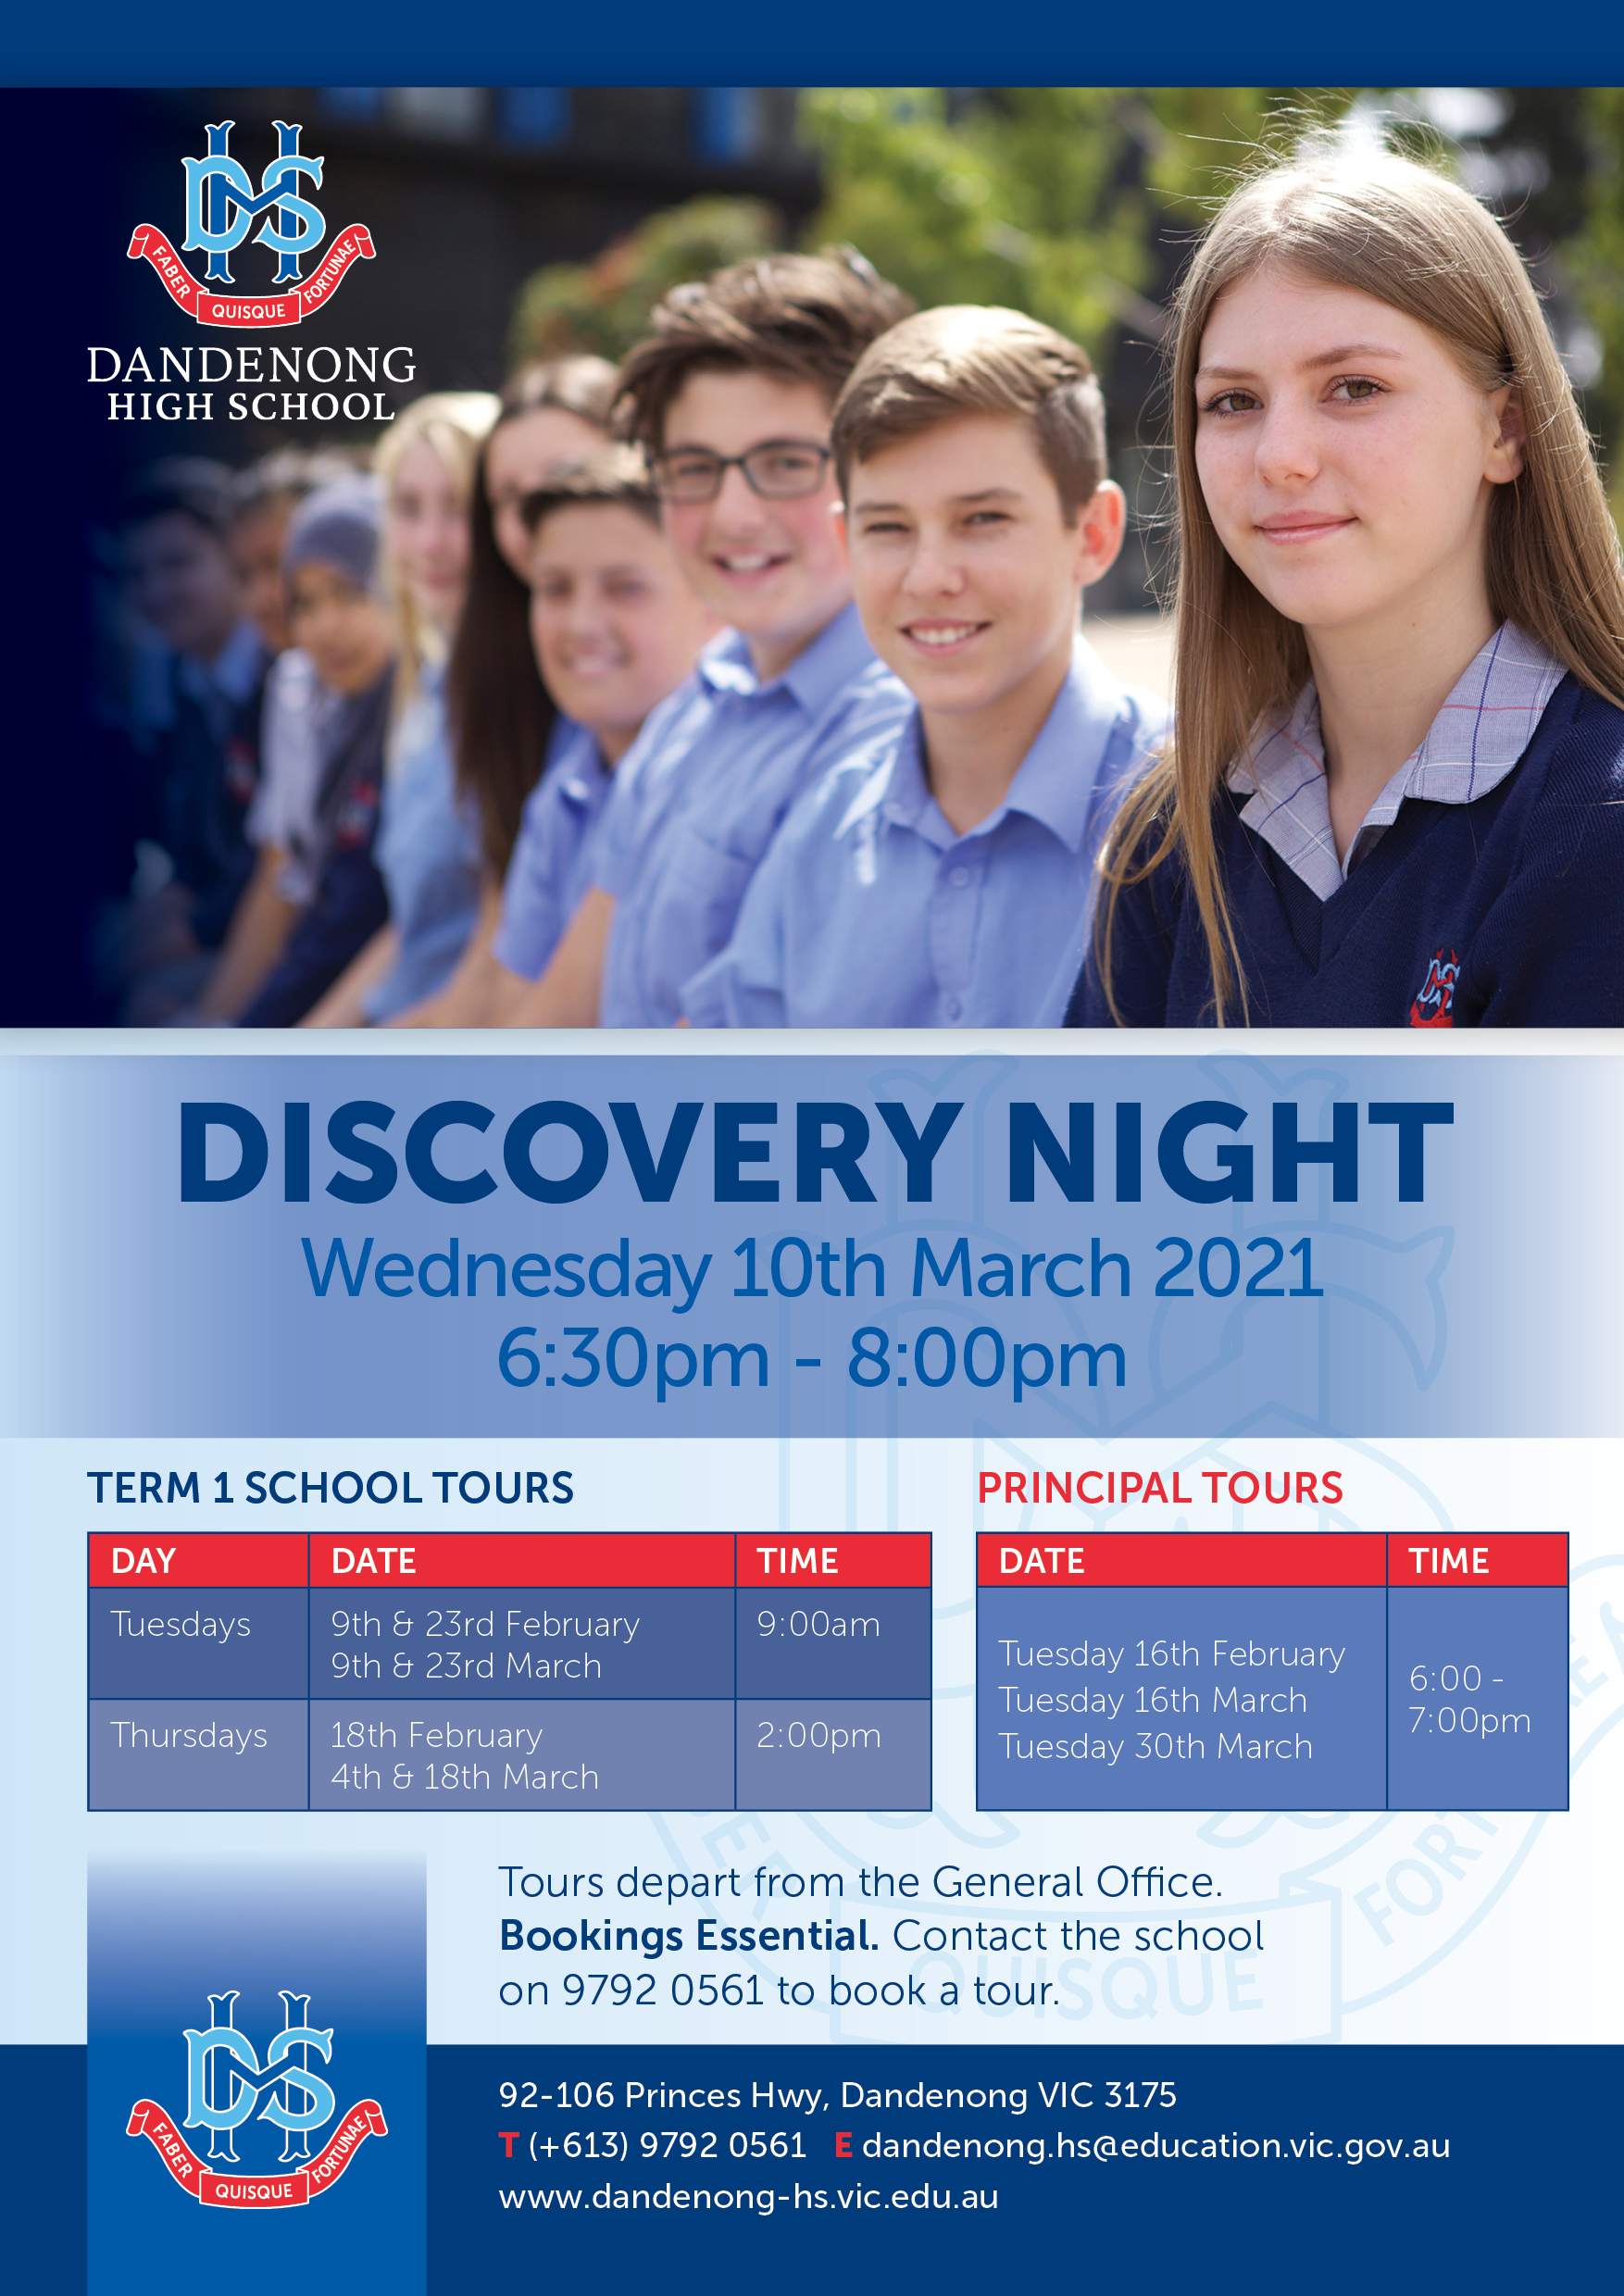 Dandenong High School Discovery Night - 10th March 2021